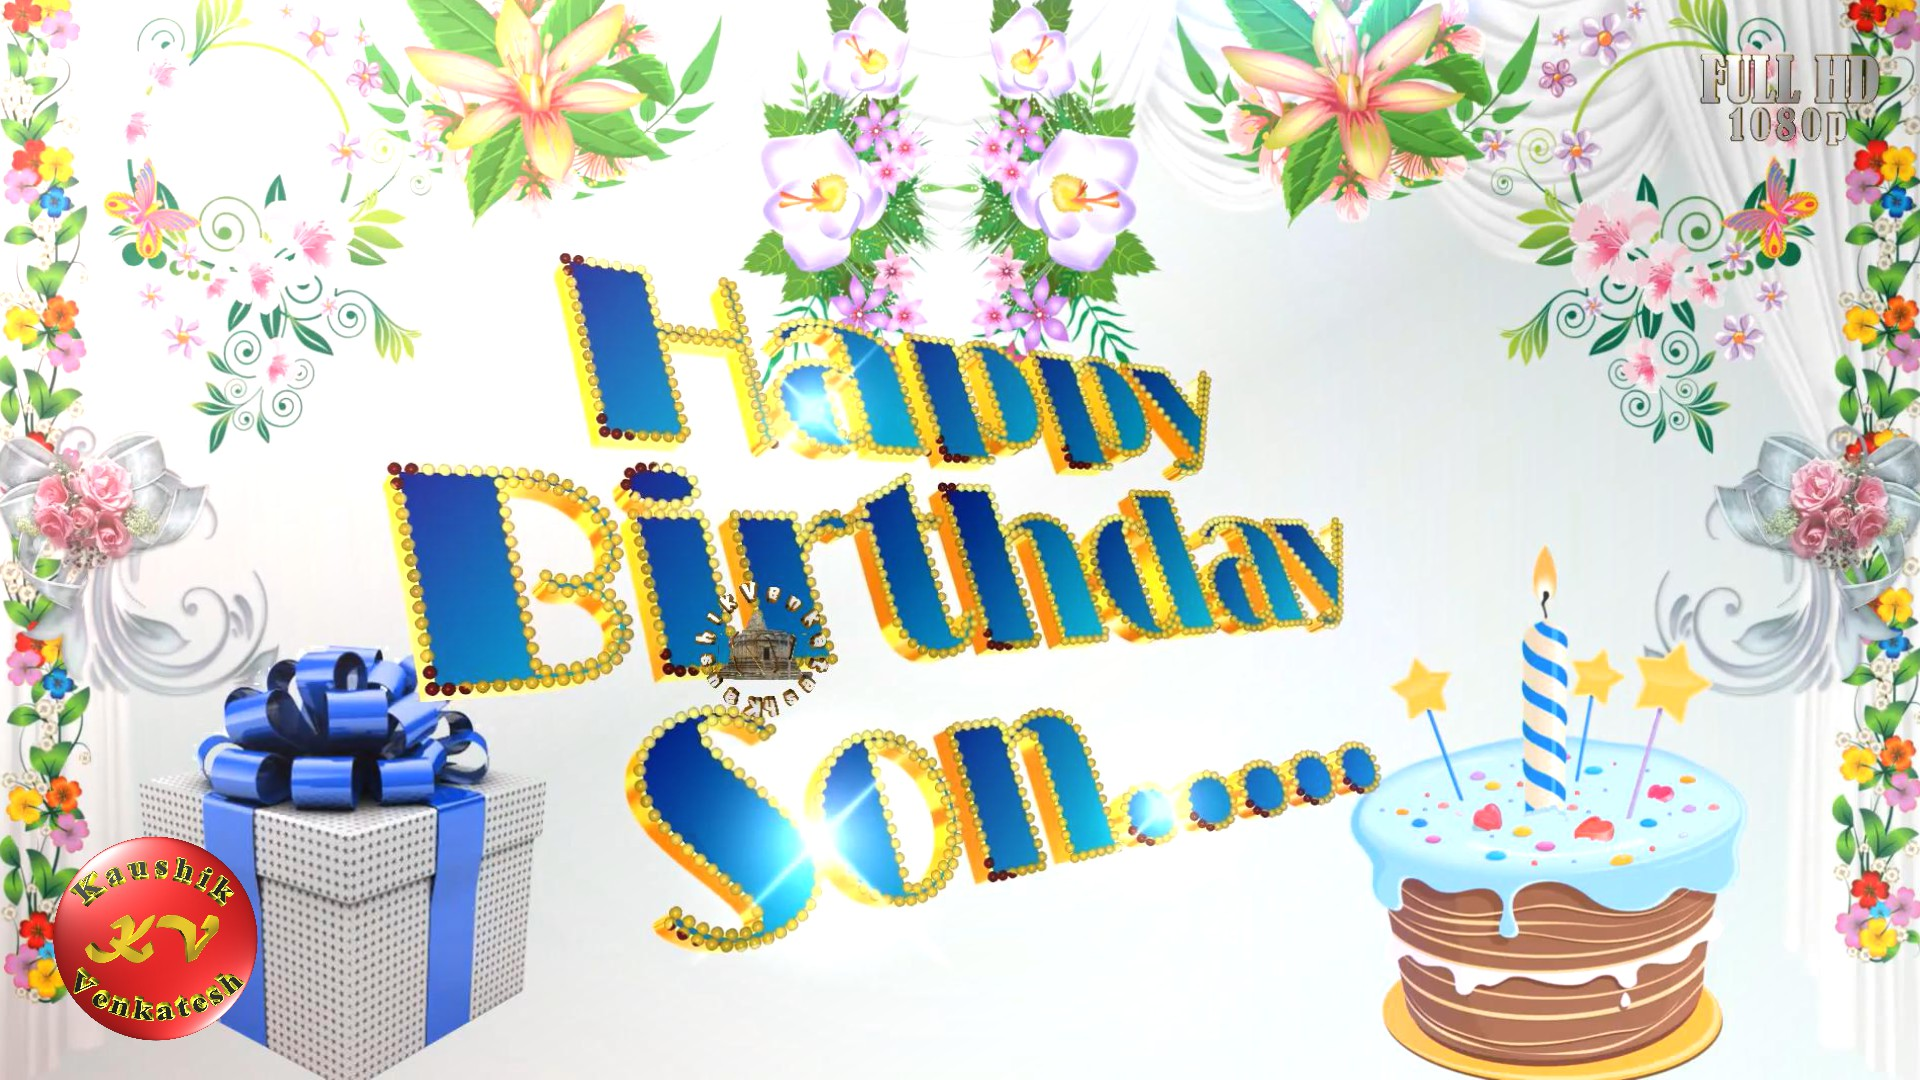 Greetings Image for the Special Occasion of Birthday. Happy Birthday Wishes Images for your loving Son's Birthday.